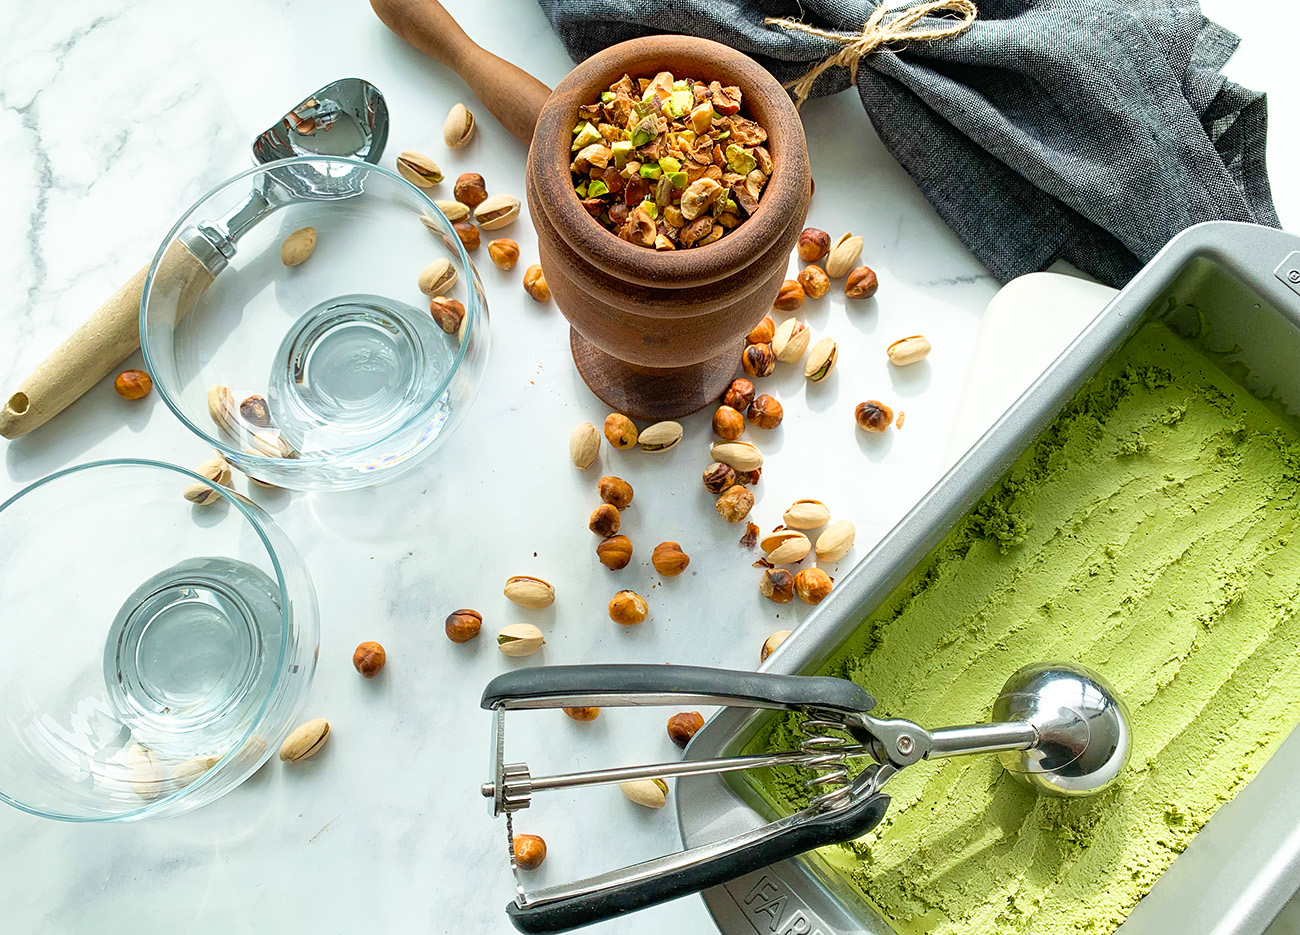 Dairy-free Matcha Ice Cream tub and toasted nuts